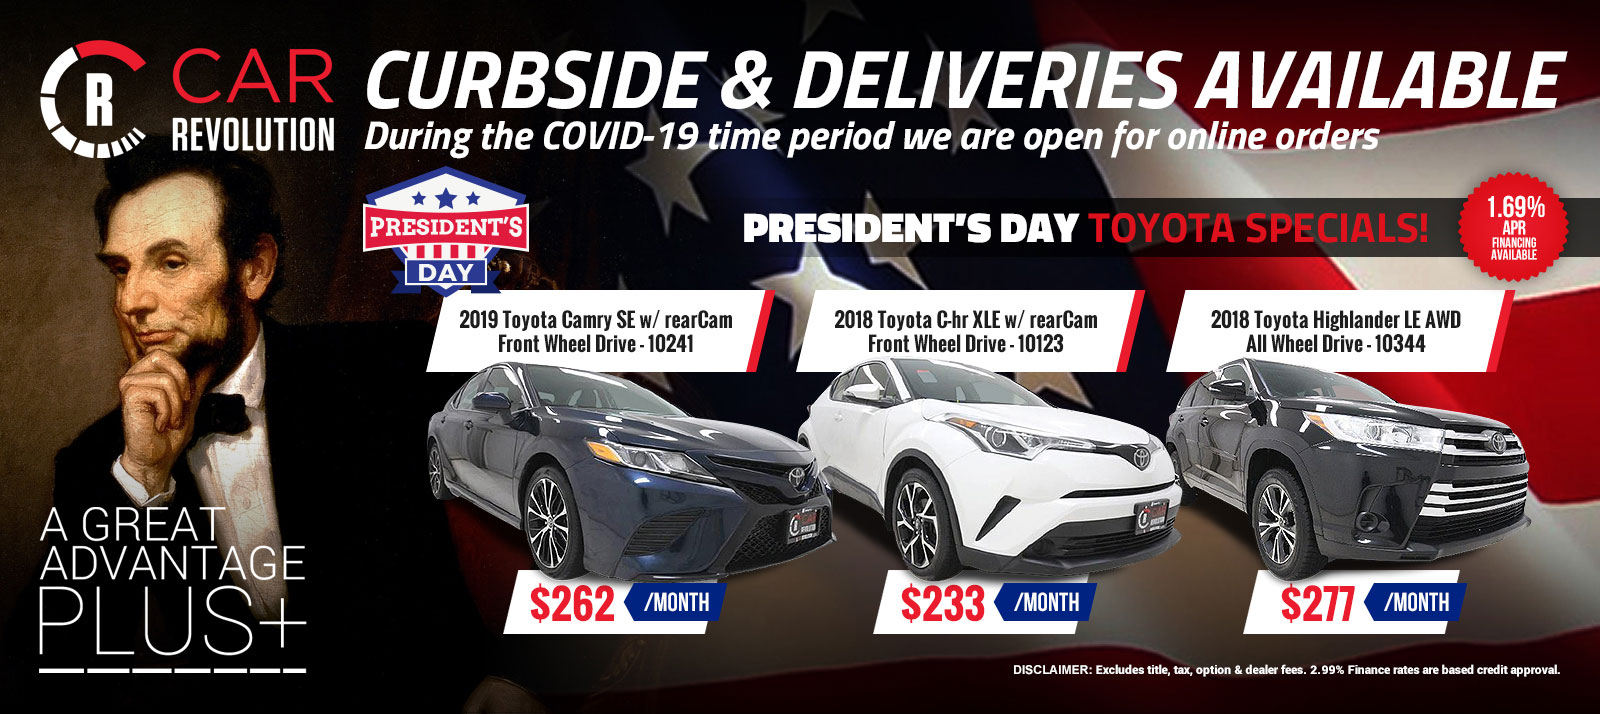 TOYOTA PRESIDENT DAY Specials!